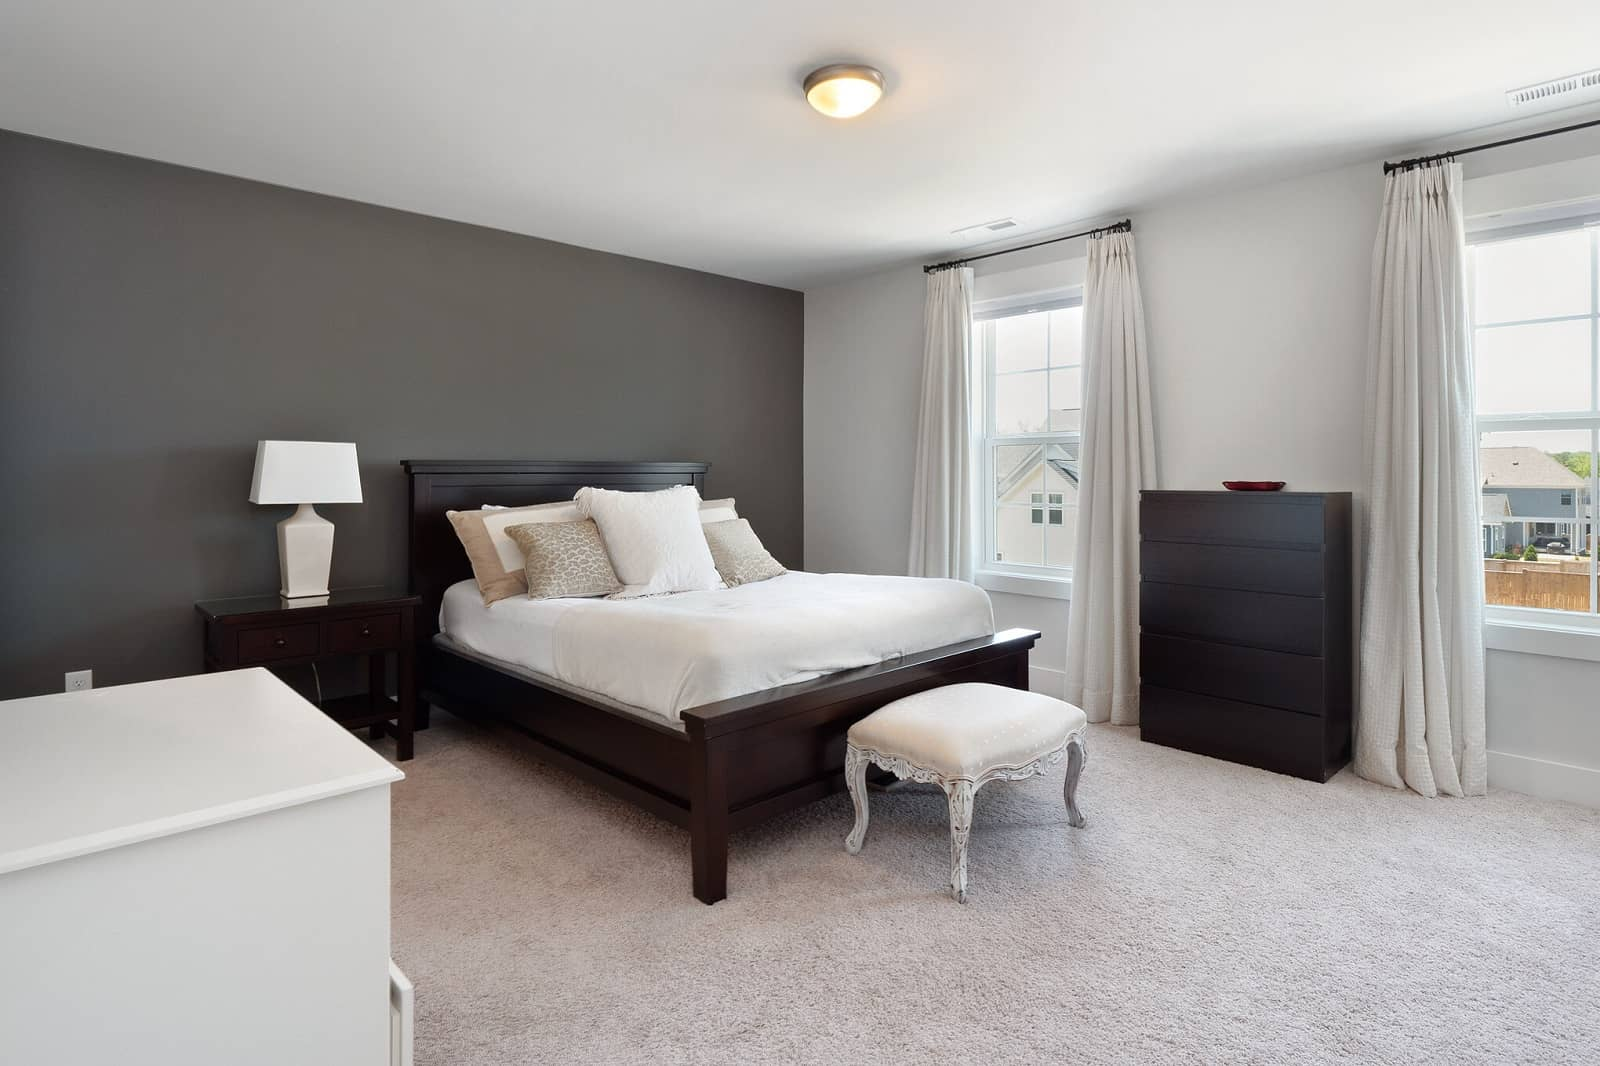 Real Estate Photography in Chapel Hill - NC - USA - Bedroom View